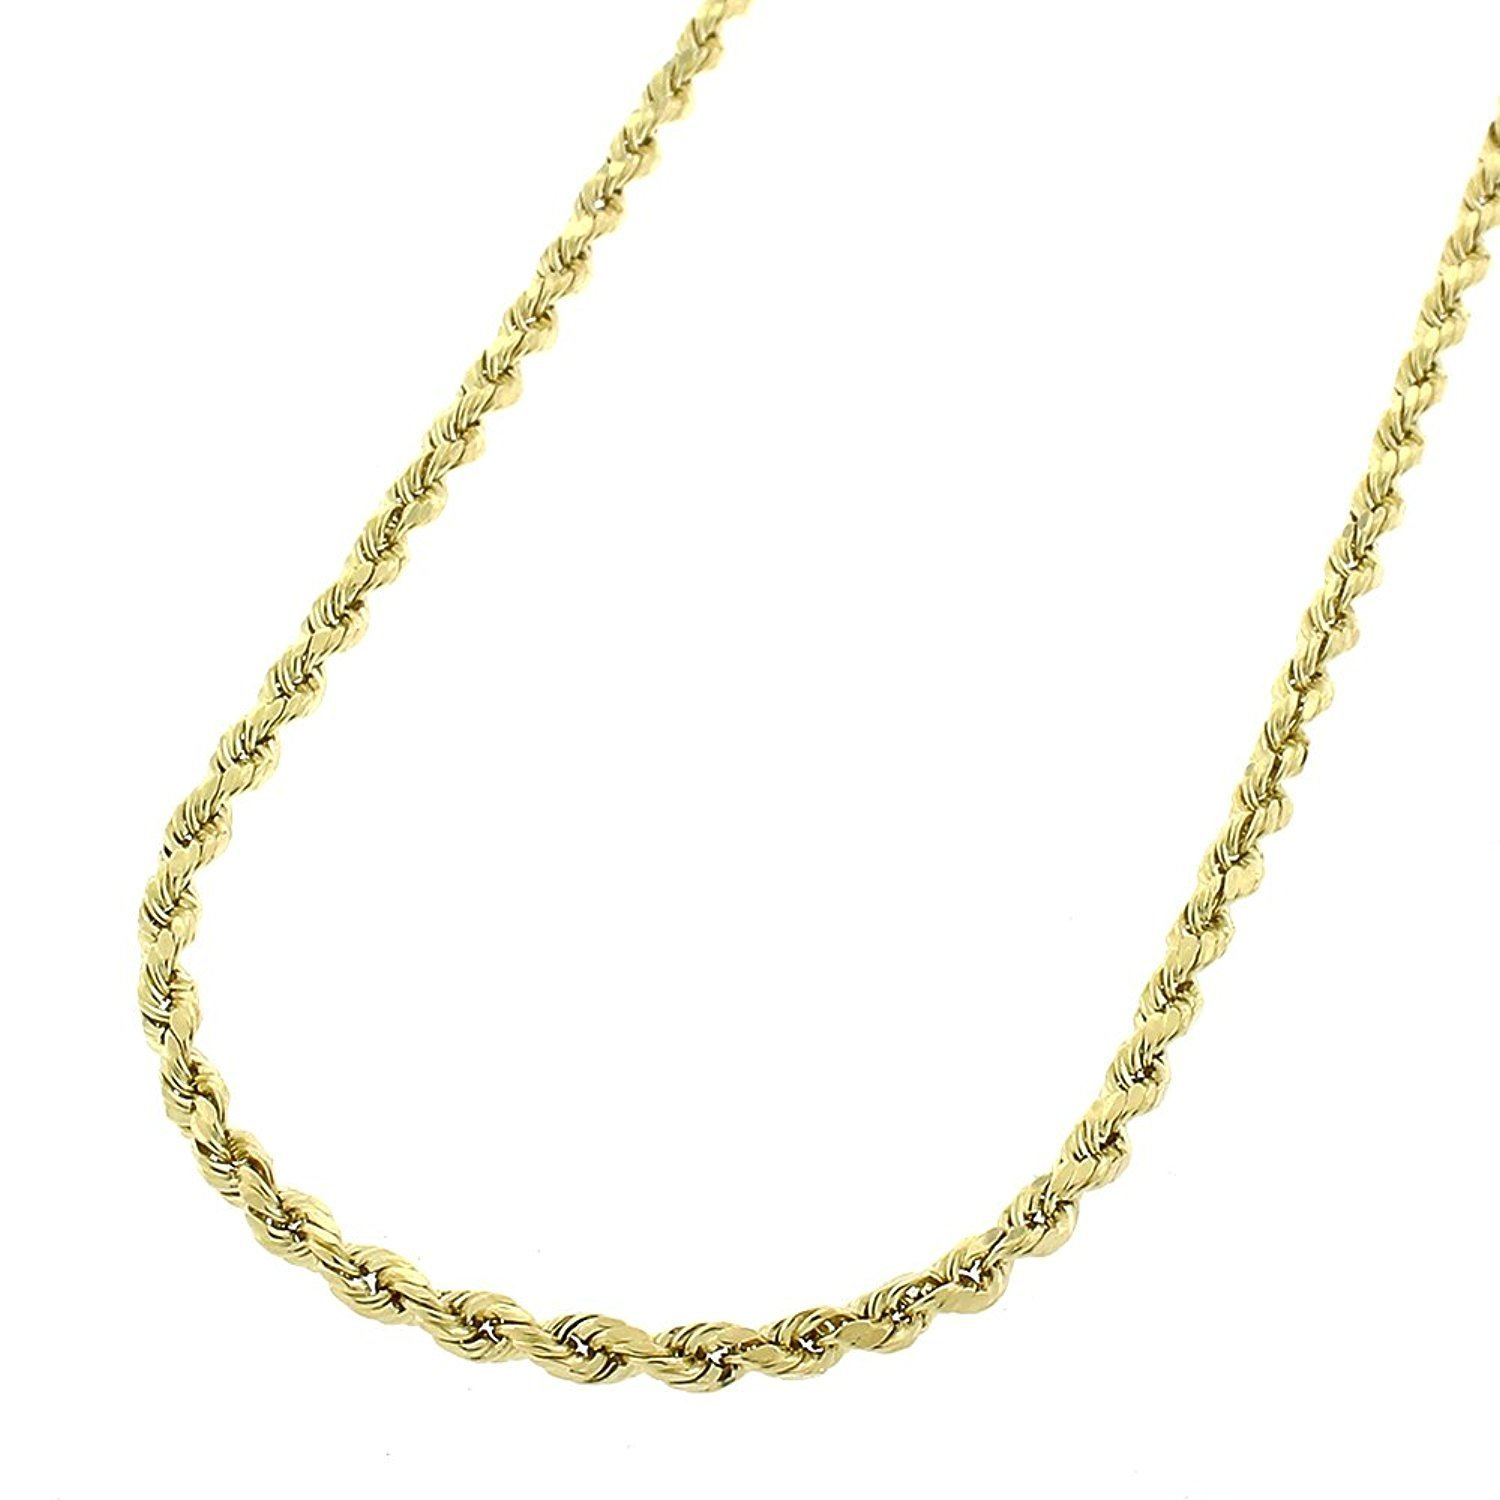 236d662324d5e 14K Yellow Gold 2mm Hollow Rope Diamond-Cut Braided Twist Link Chain  Necklace 16